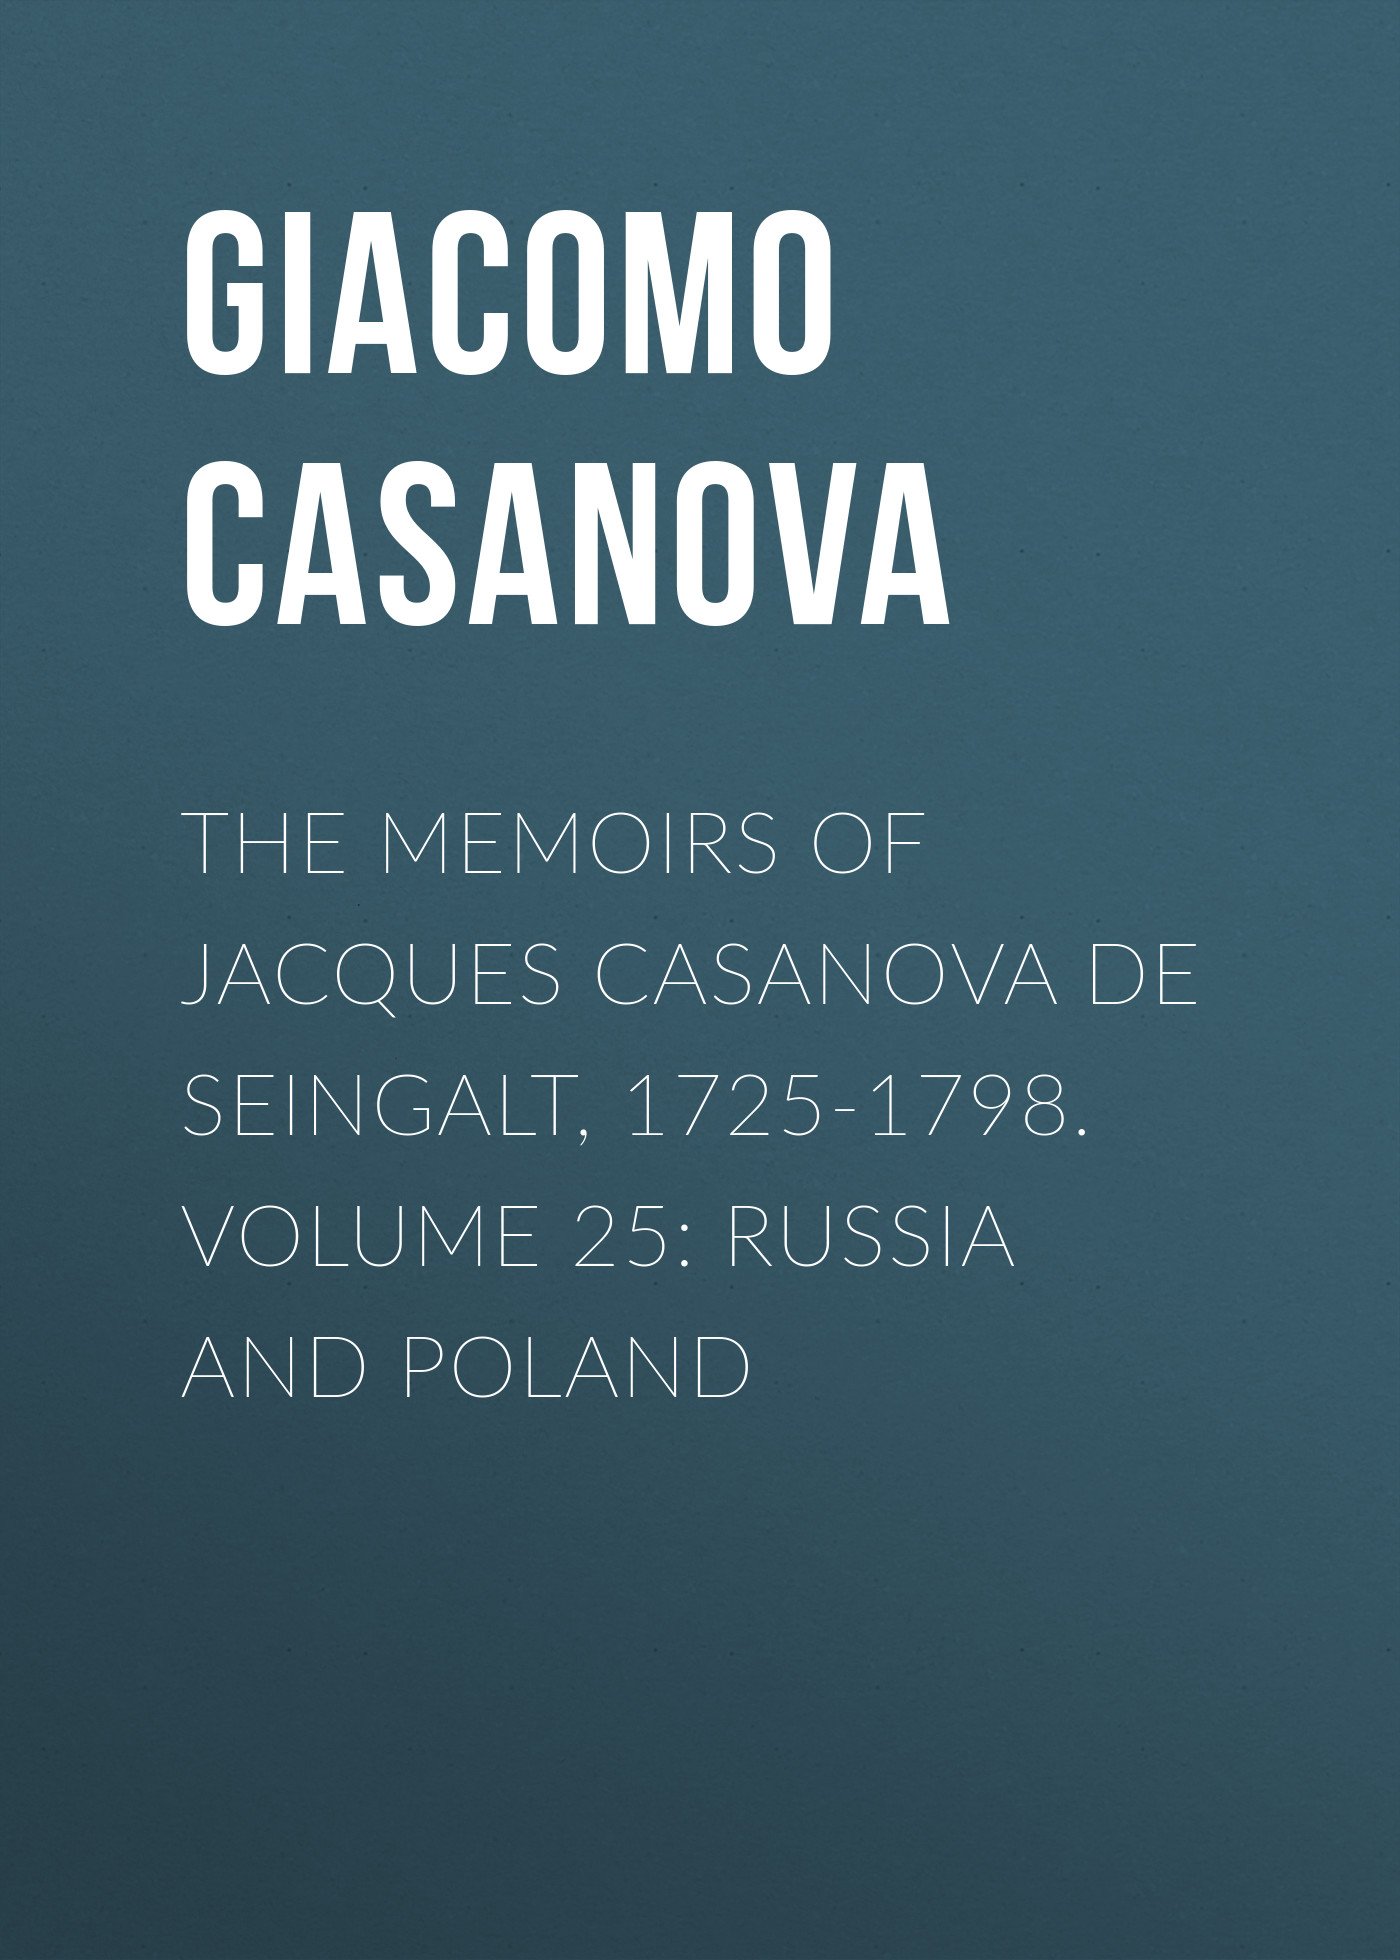 Giacomo Casanova The Memoirs of Jacques Casanova de Seingalt, 1725-1798. Volume 25: Russia and Poland giacomo casanova the memoirs of jacques casanova de seingalt 1725 1798 volume 30 old age and death